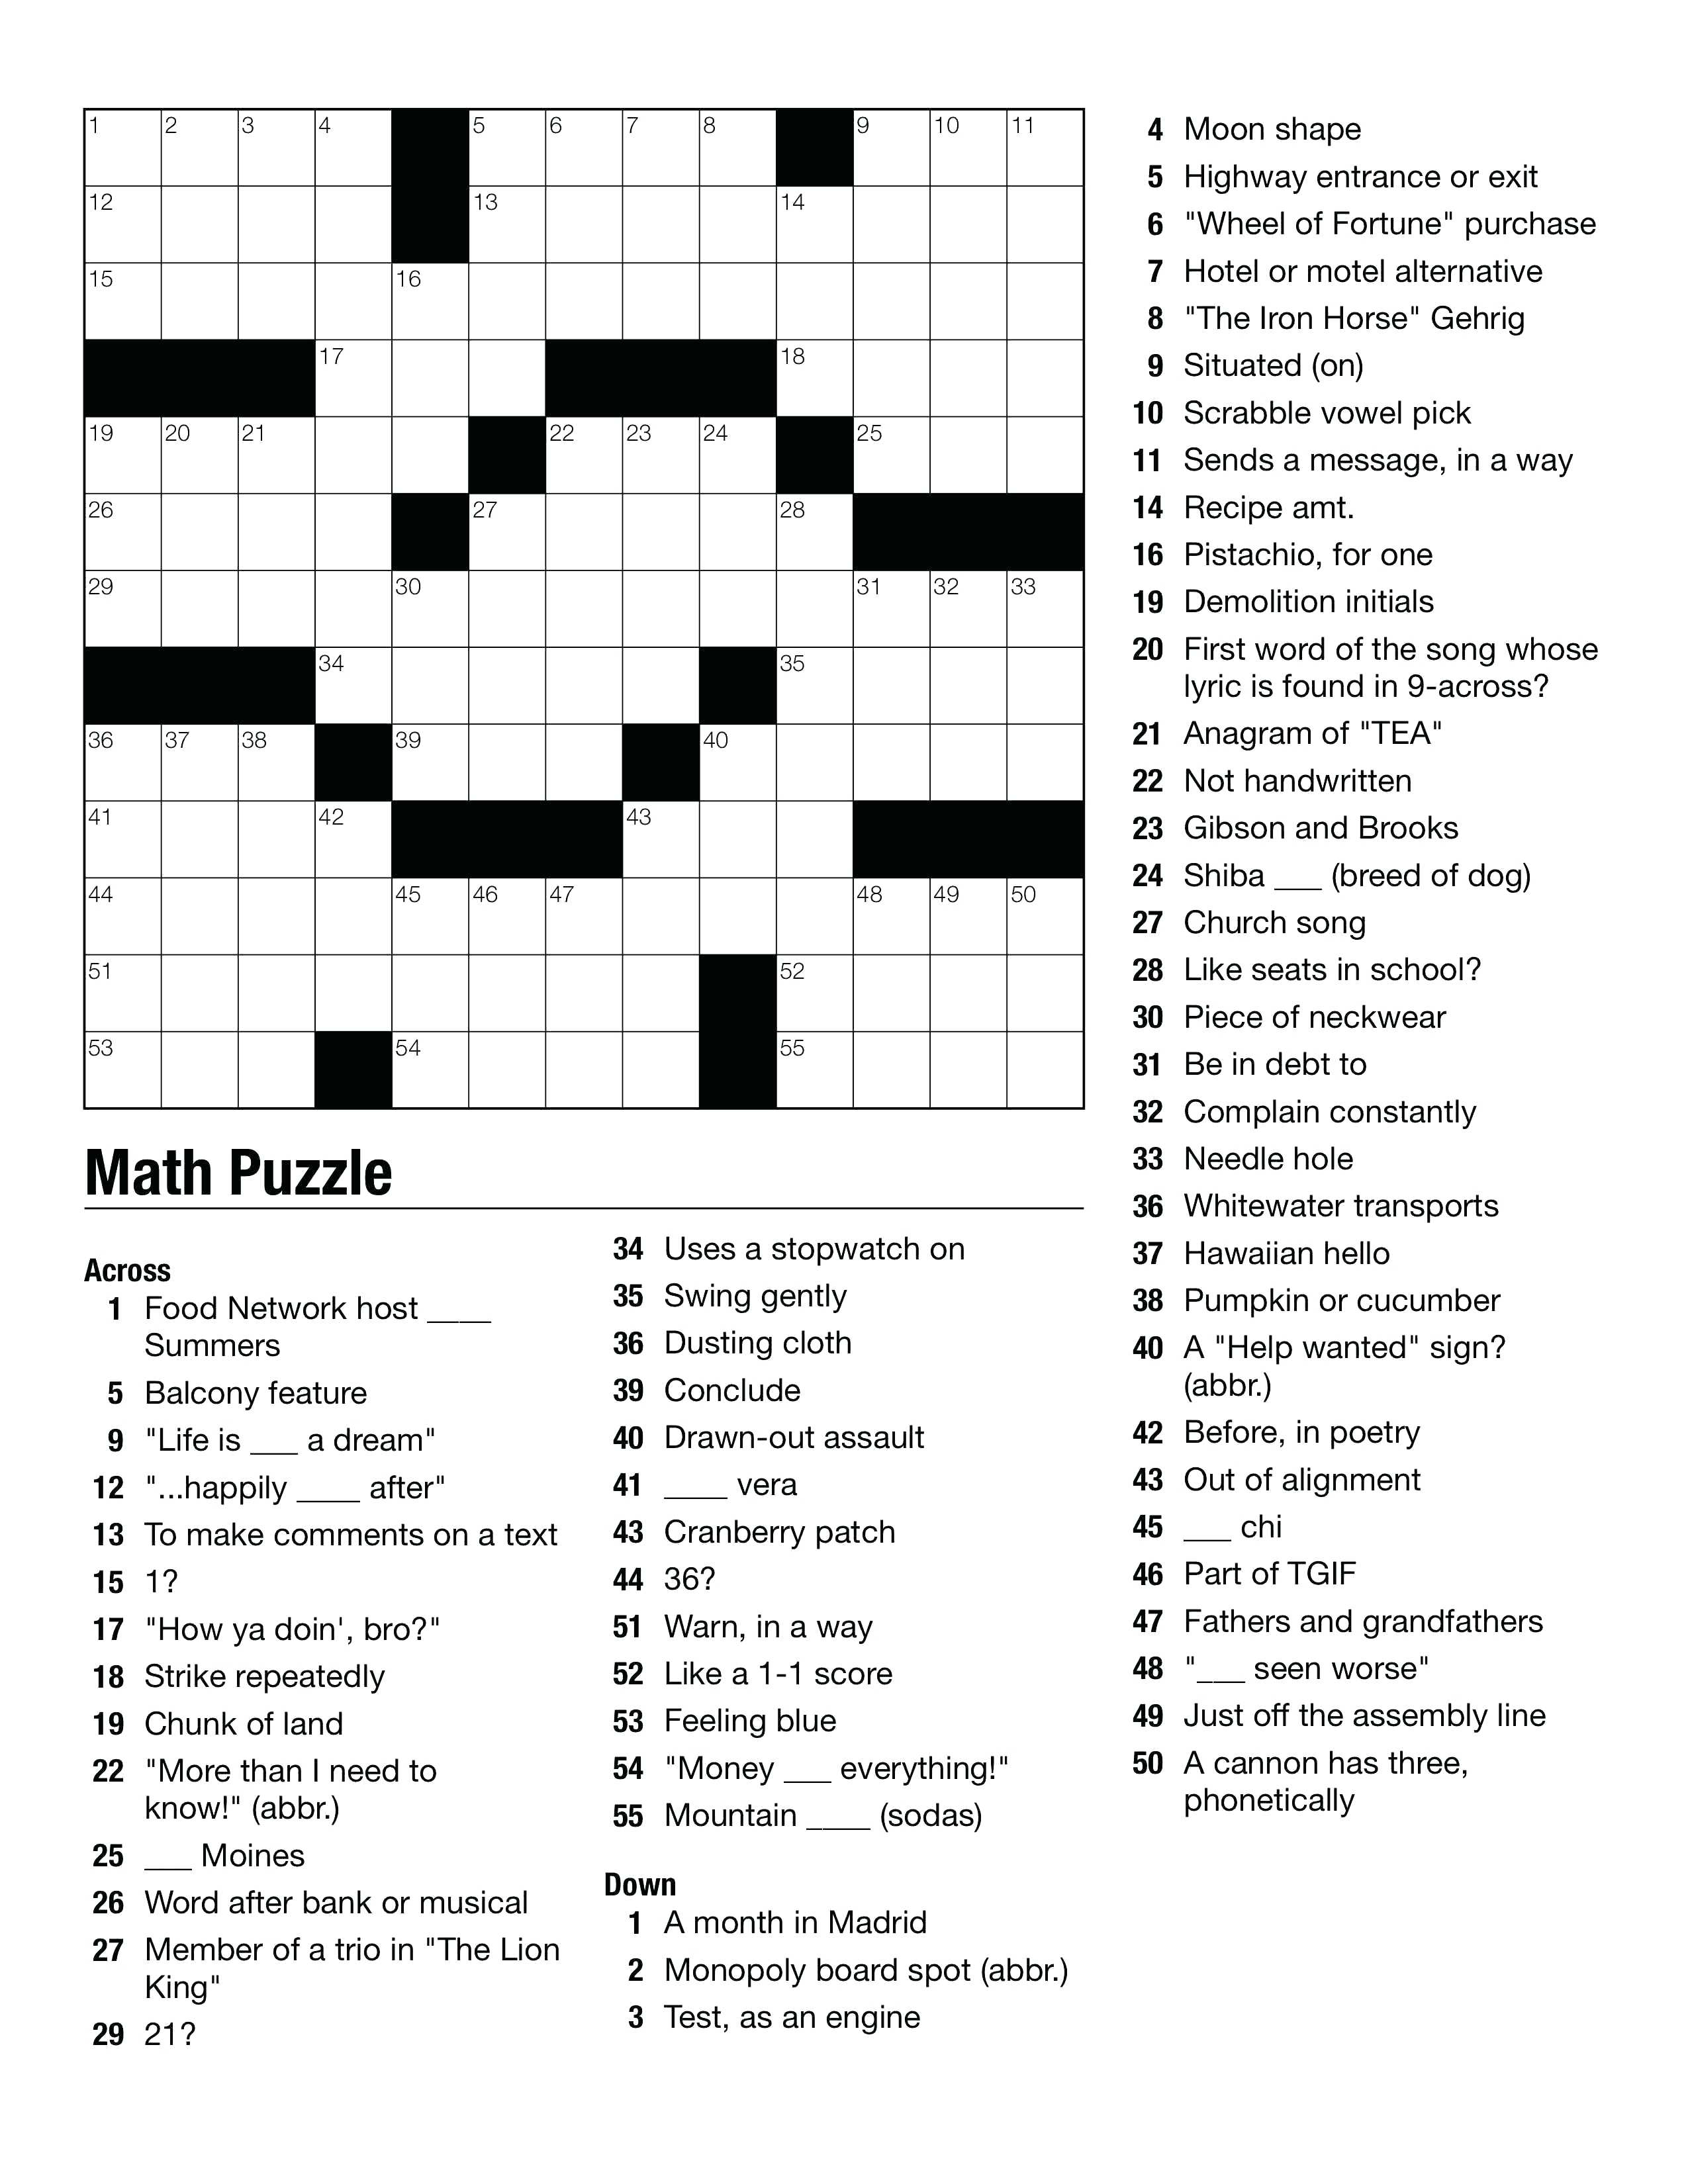 Geometry Puzzles Math Geometry Images Teaching Ideas On Crossword - Printable Math Crossword Puzzles